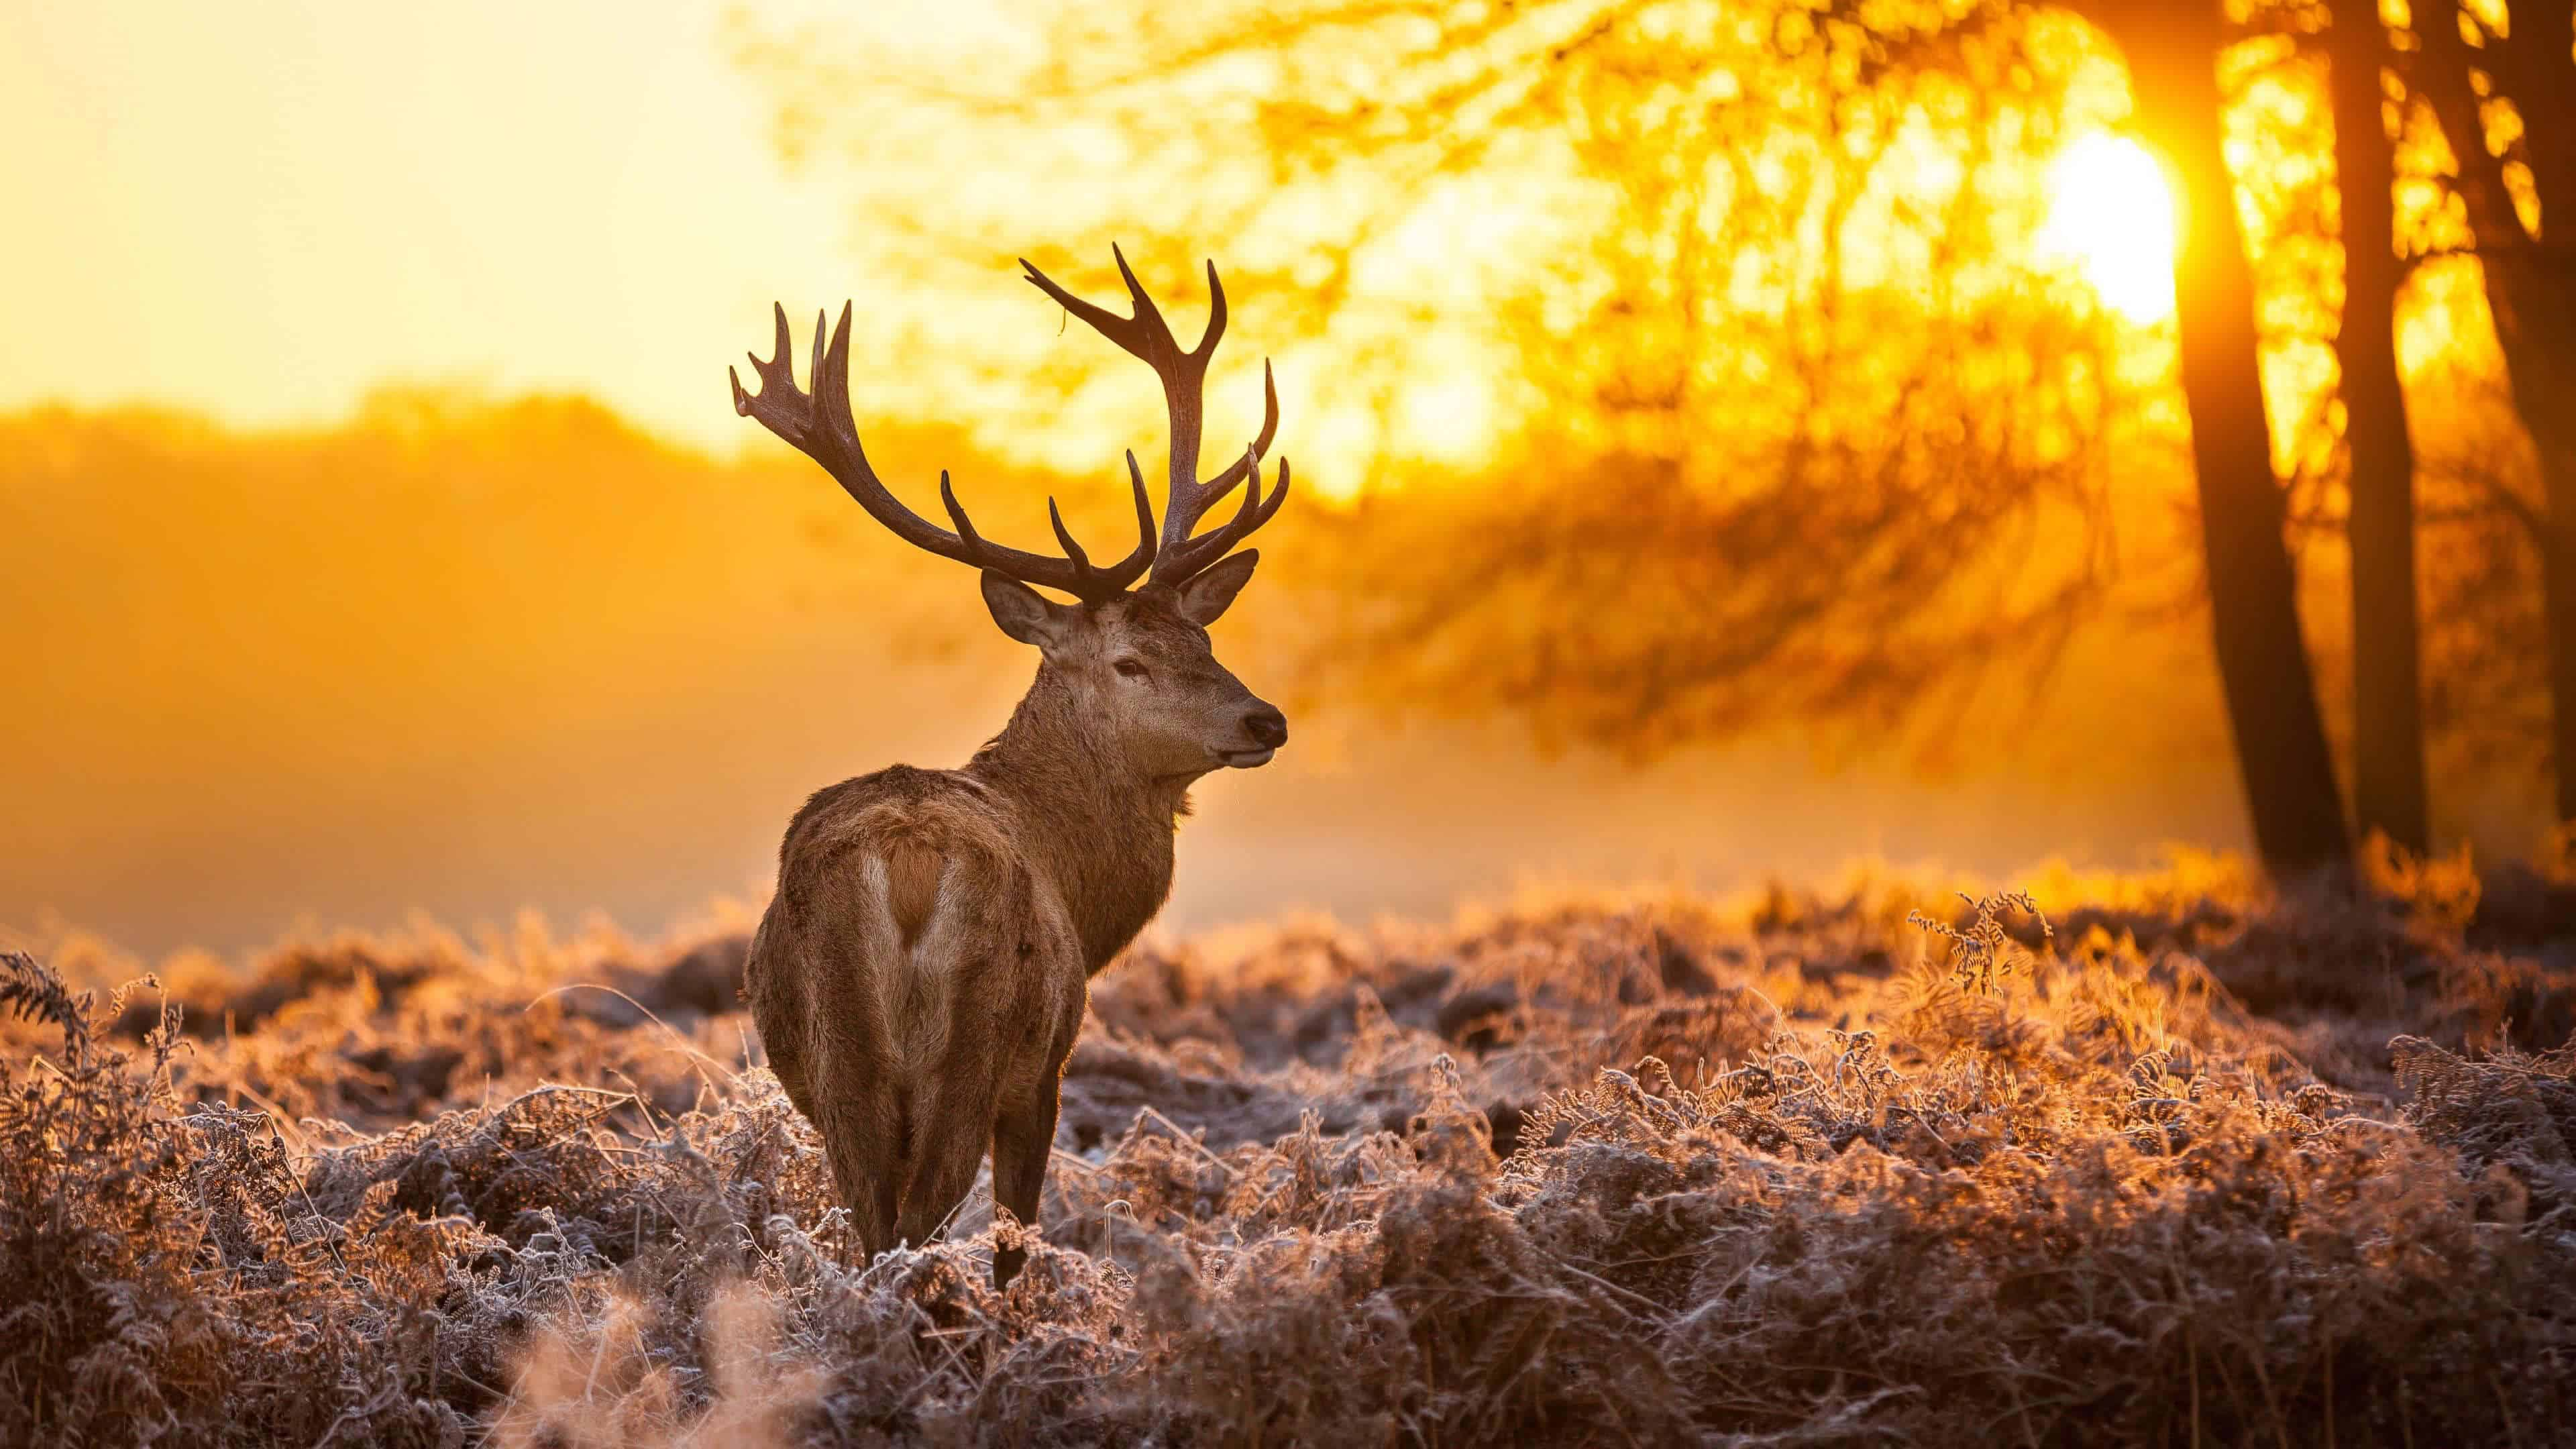 reindeer at sunset uhd 4k wallpaper